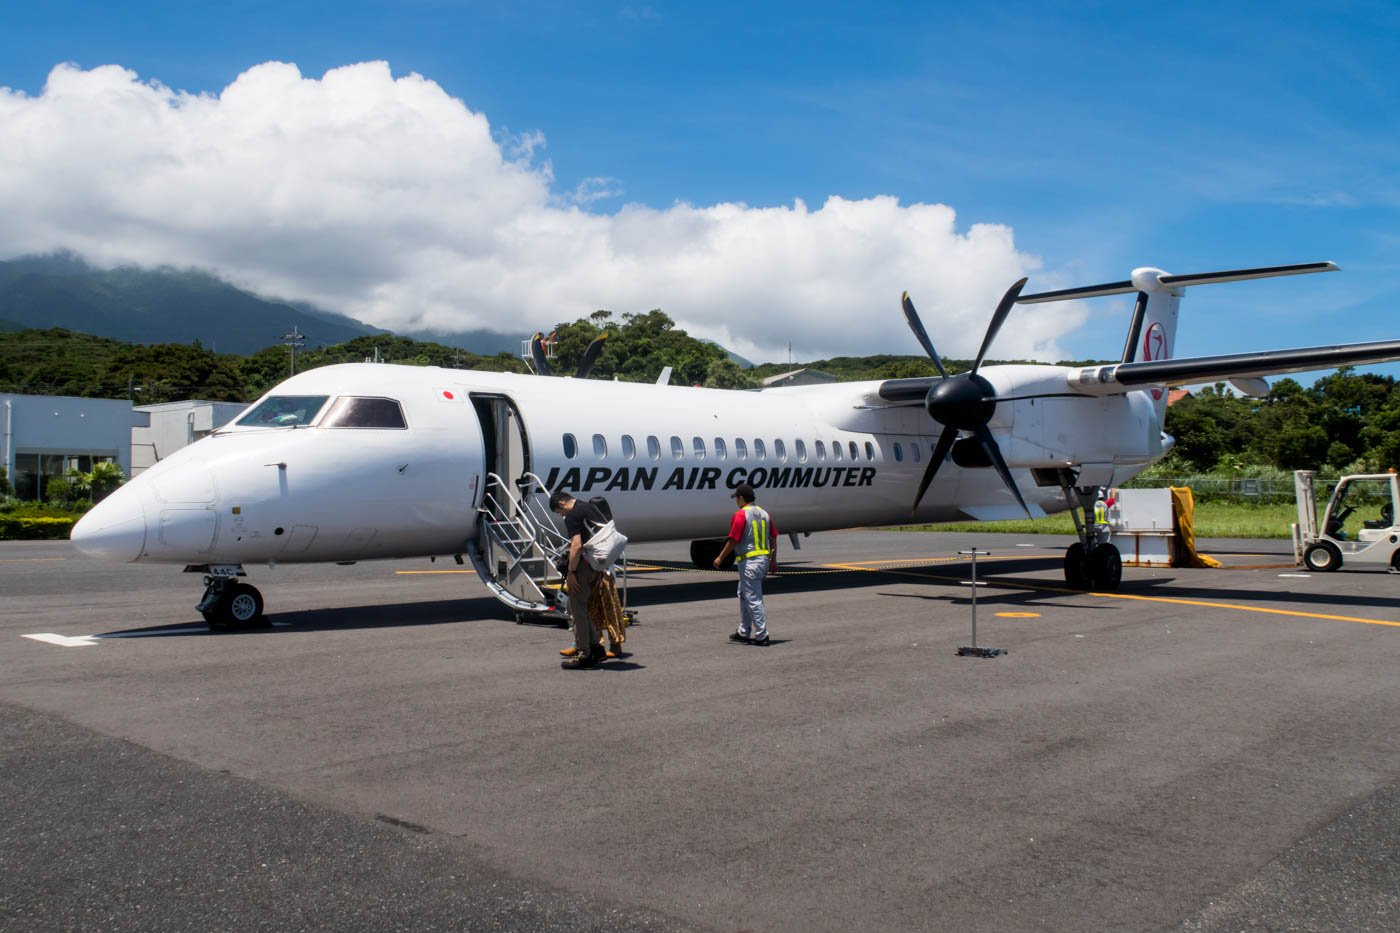 Japan Air Commuter Dash 8 Q400 at Yakushima Airport